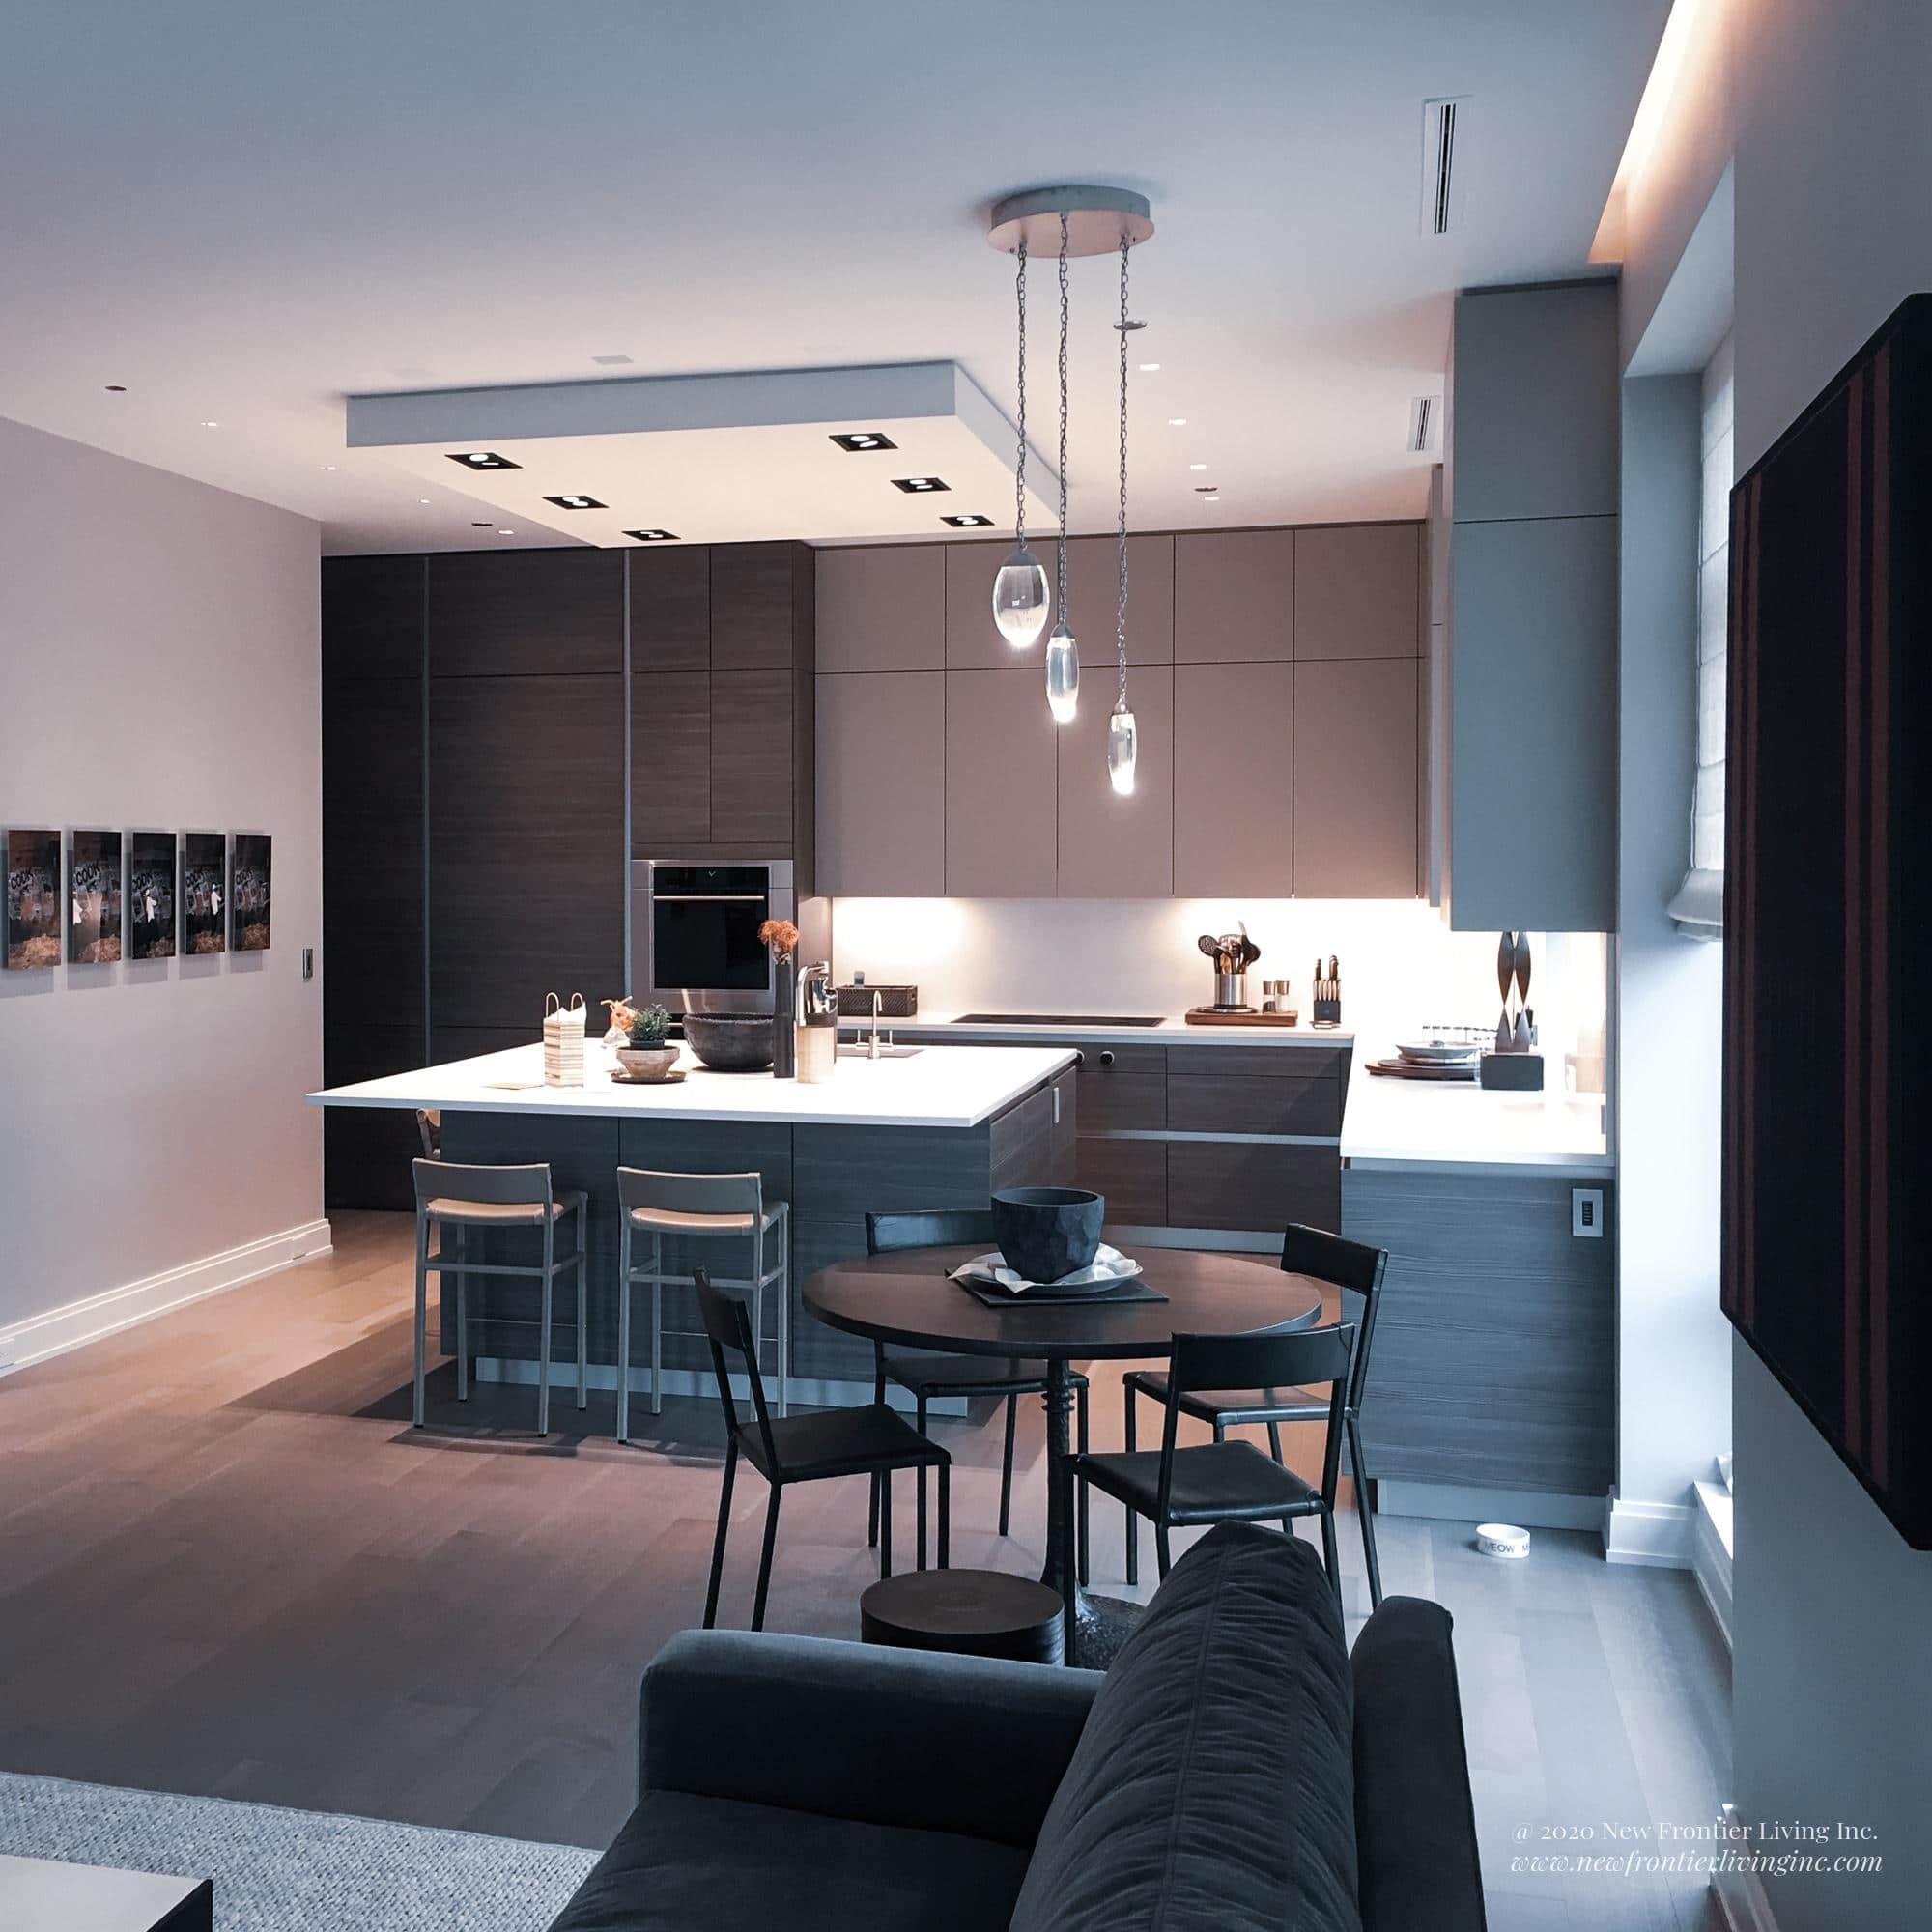 Black kitchen cabinetry with white countertop and square kitchen island long view